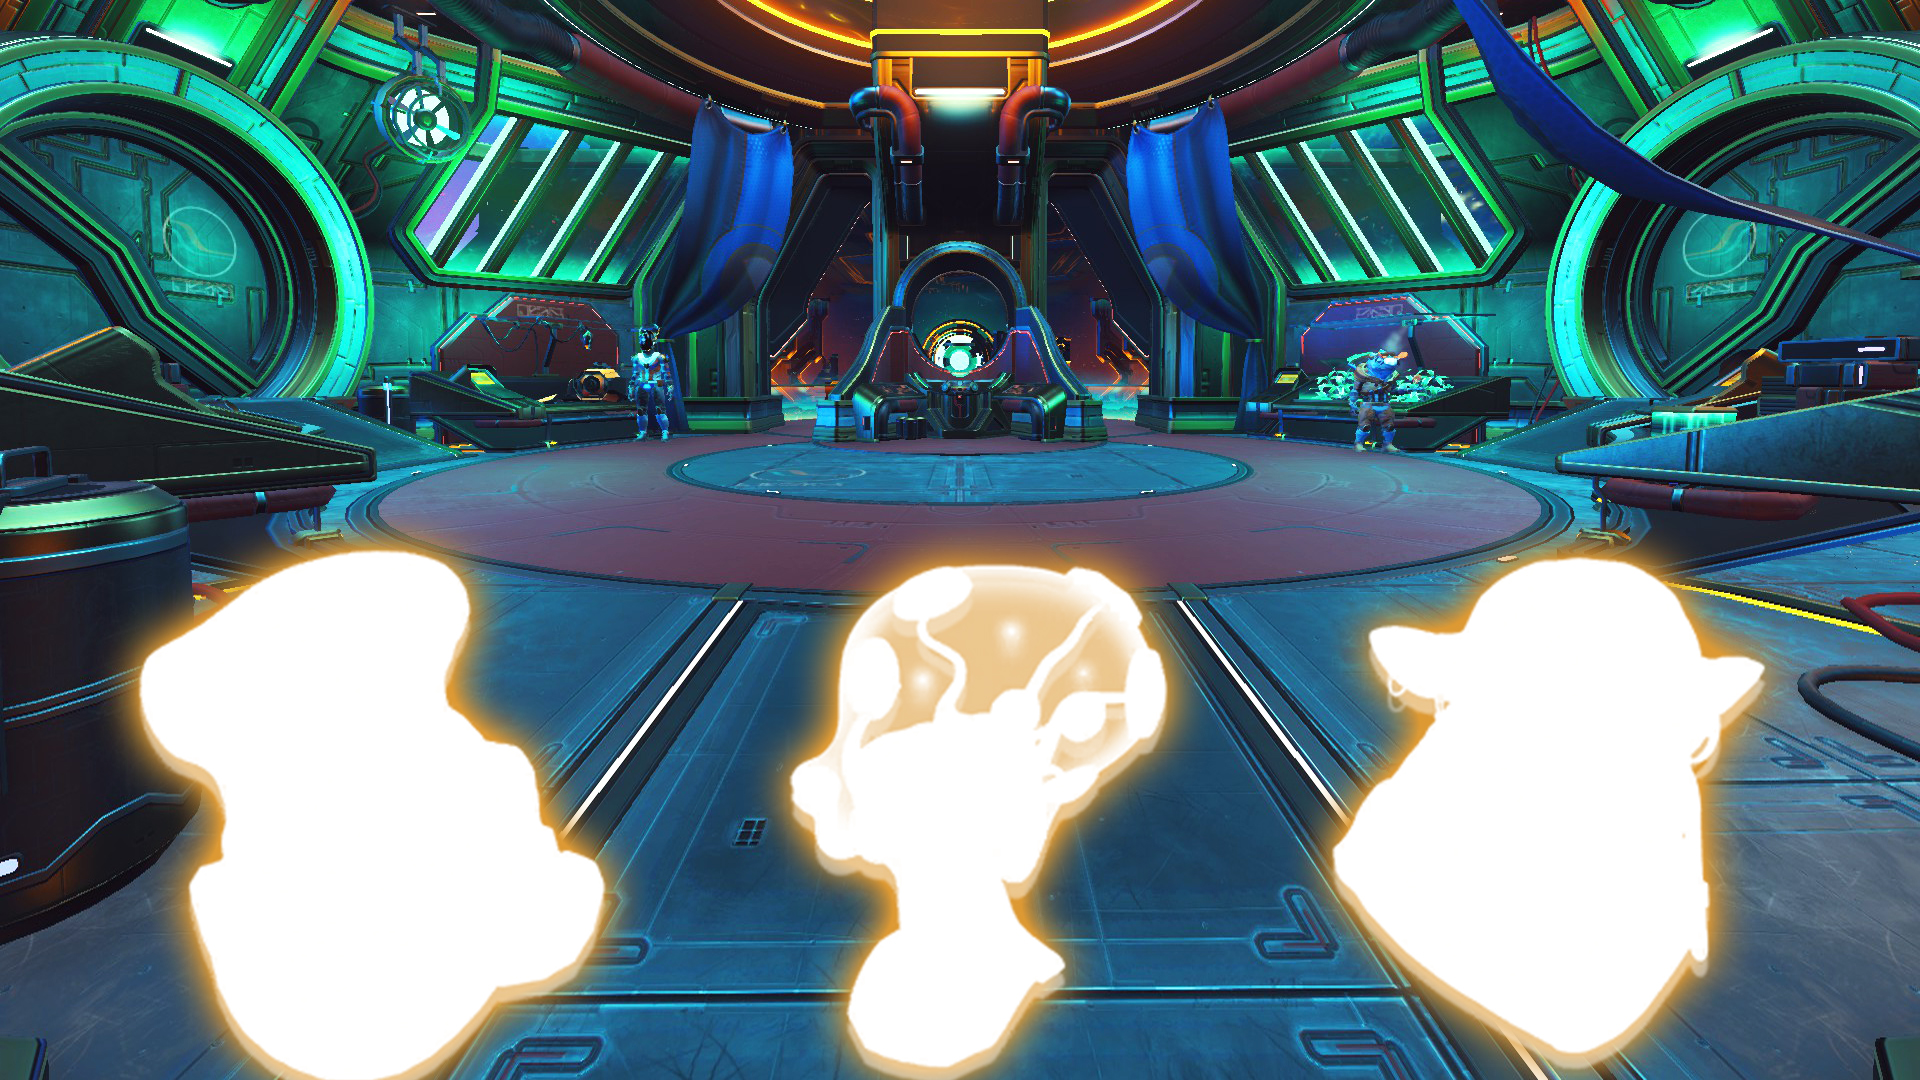 3 new Helmets Added to No Man's Sky & Quicksilver Cost in Sneaky Update